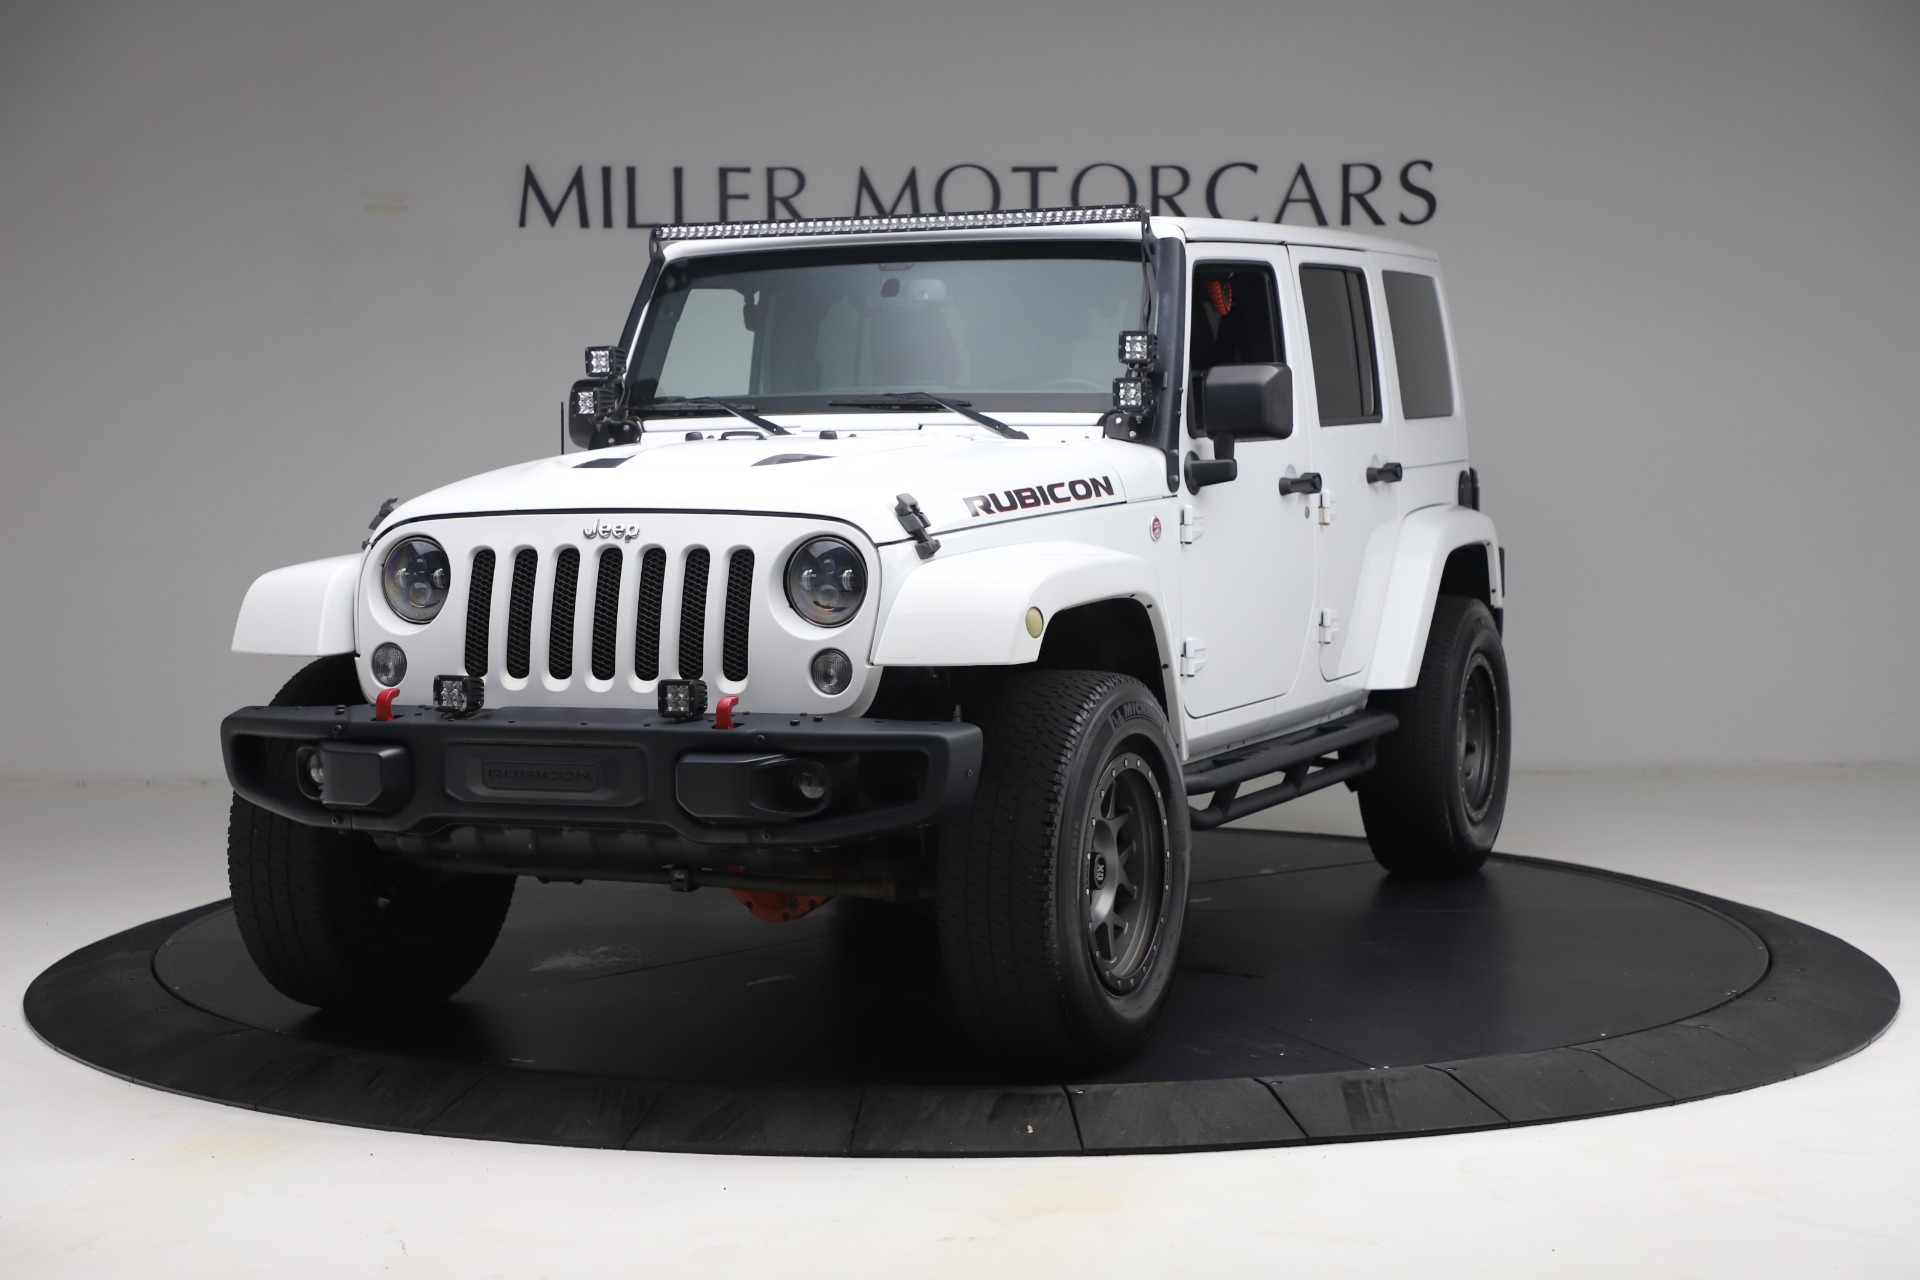 Used 2015 Jeep Wrangler Unlimited Rubicon Hard Rock for sale $39,900 at McLaren Greenwich in Greenwich CT 06830 1